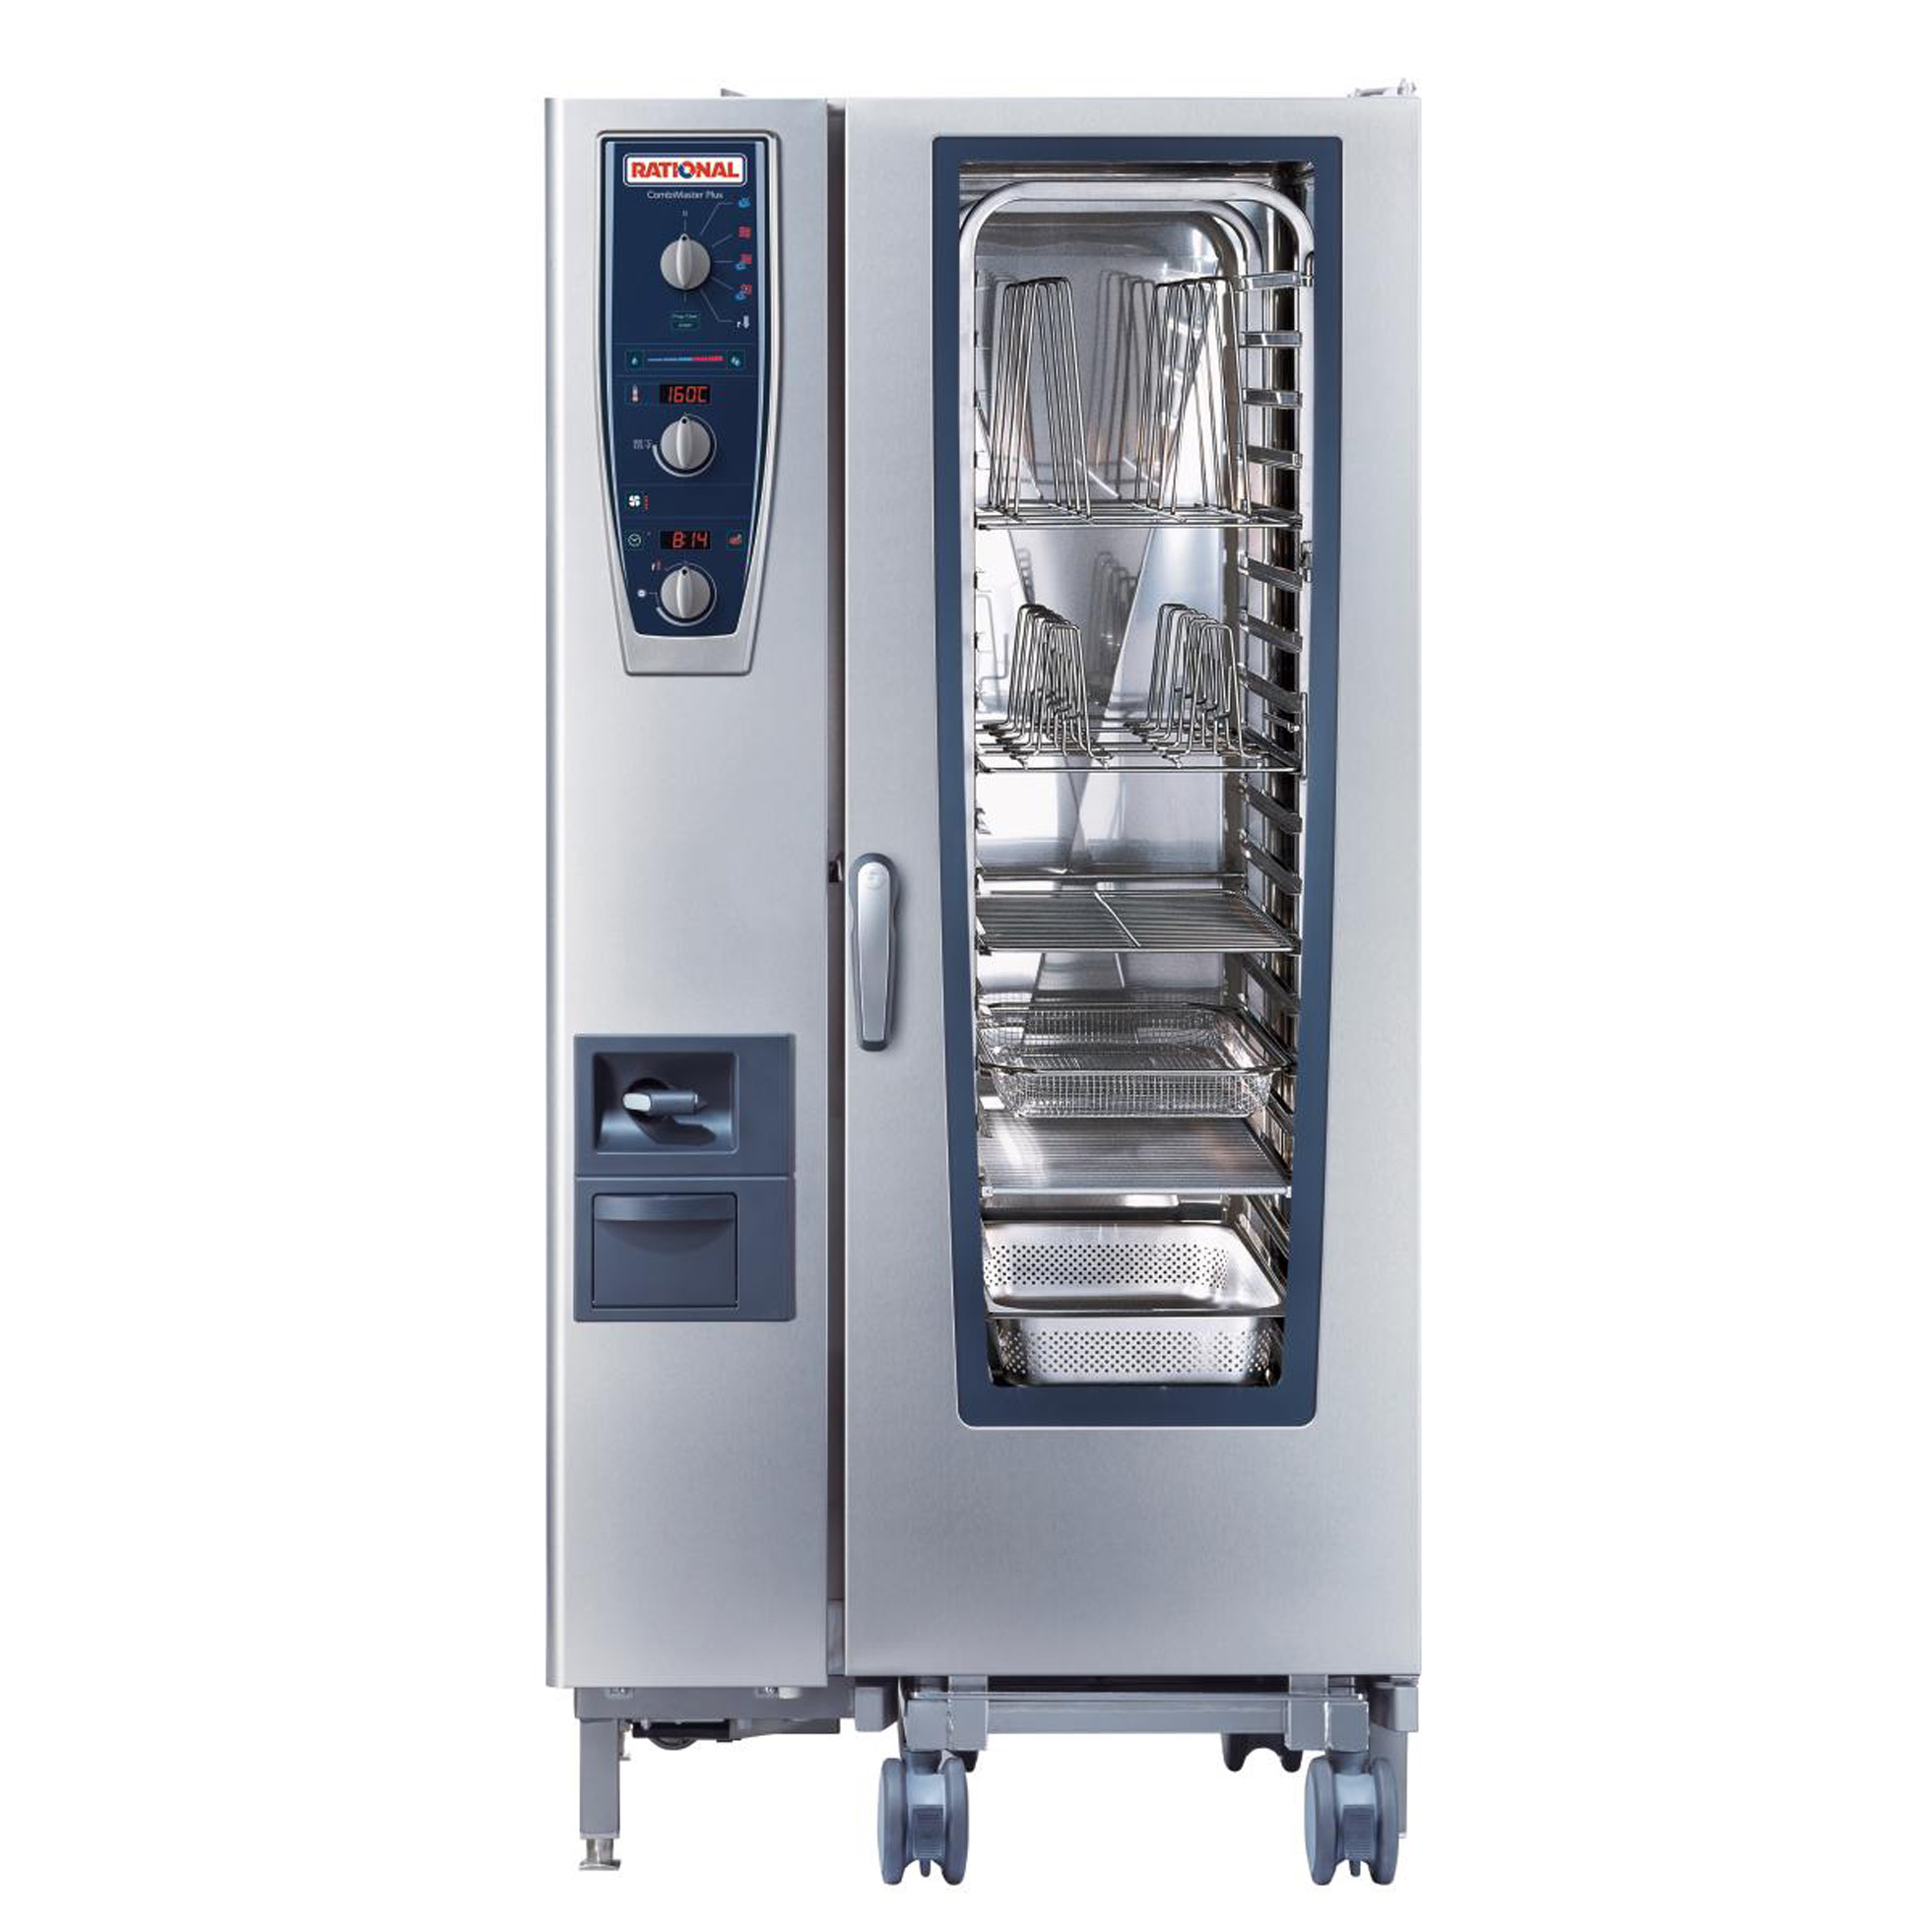 RATIONAL B219106.43.202 combi oven, electric